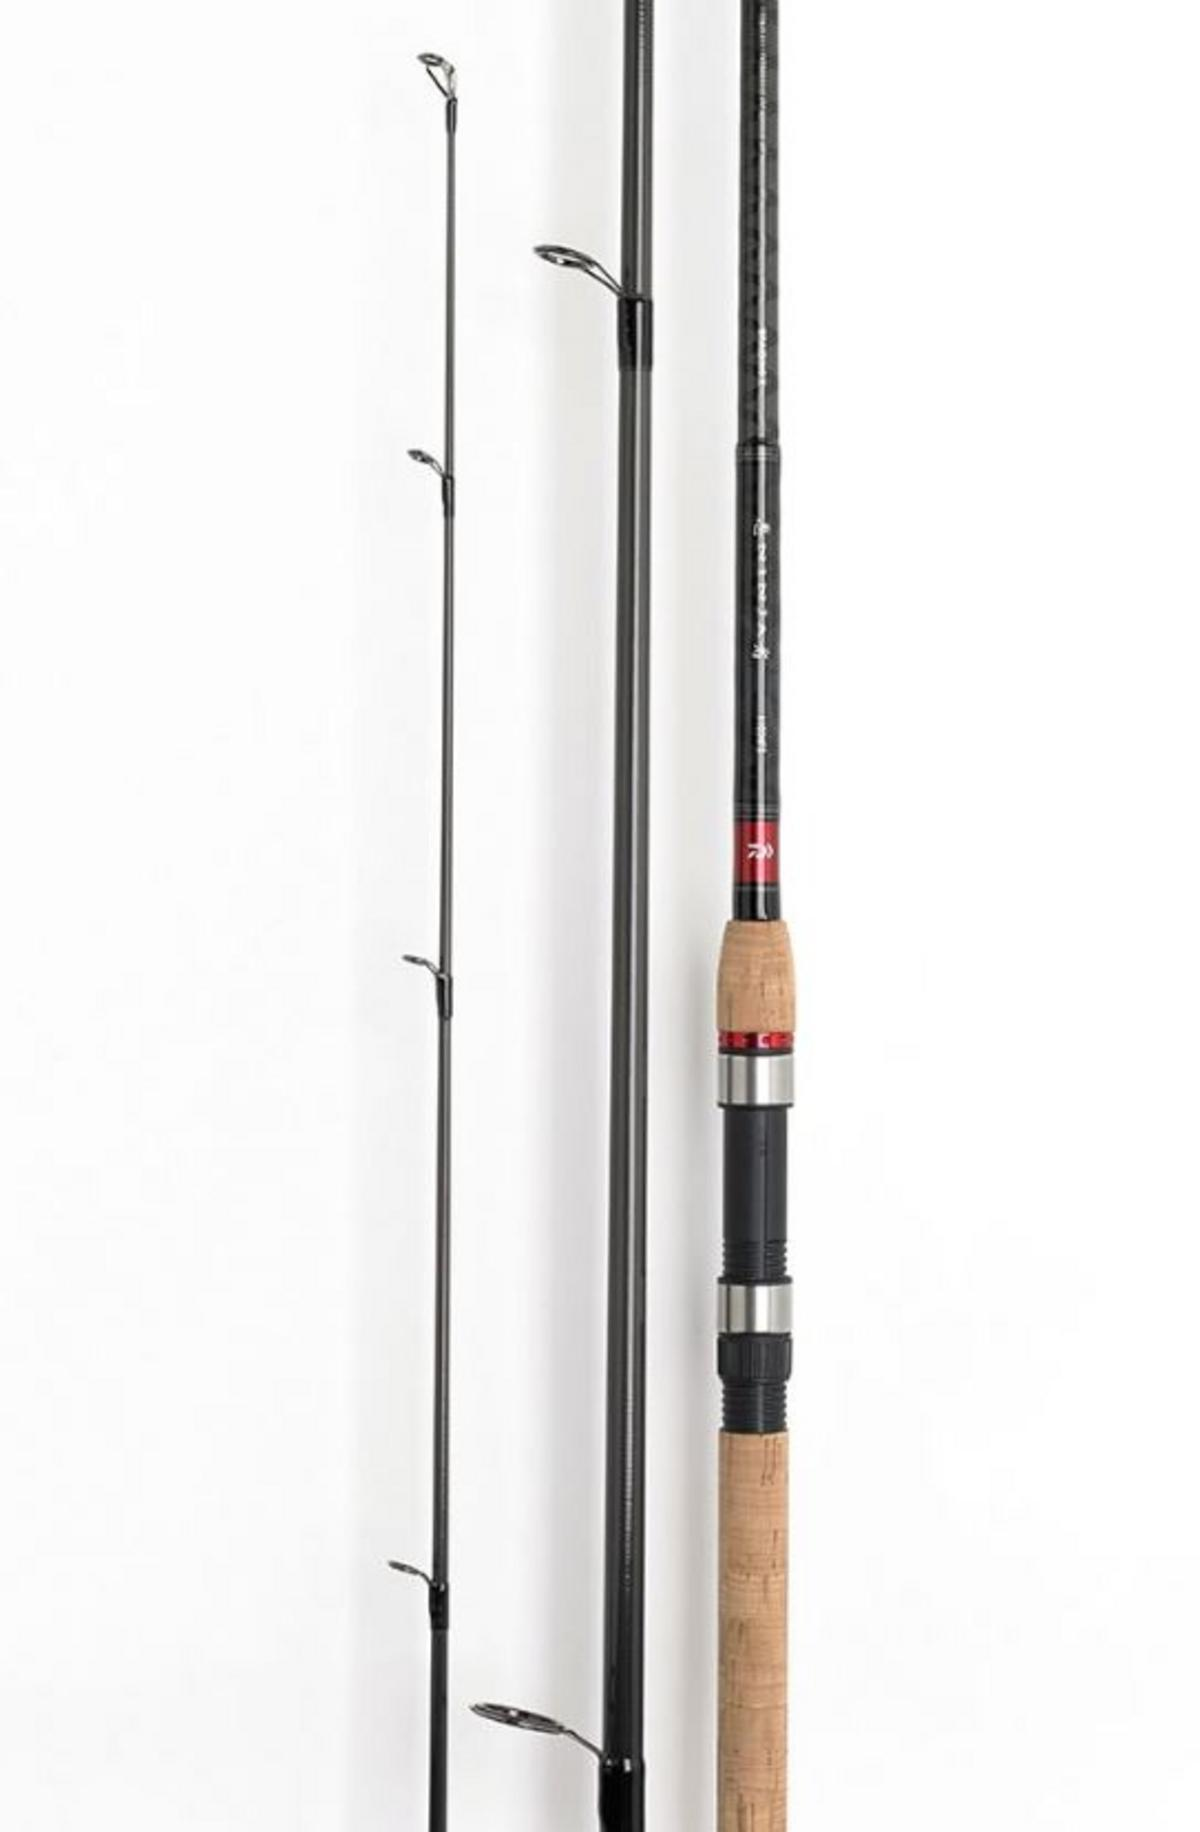 EX DISPLAY Daiwa Ninja X spinning Rod 9ft 15-40g 4pc NJX904MHRS-AS